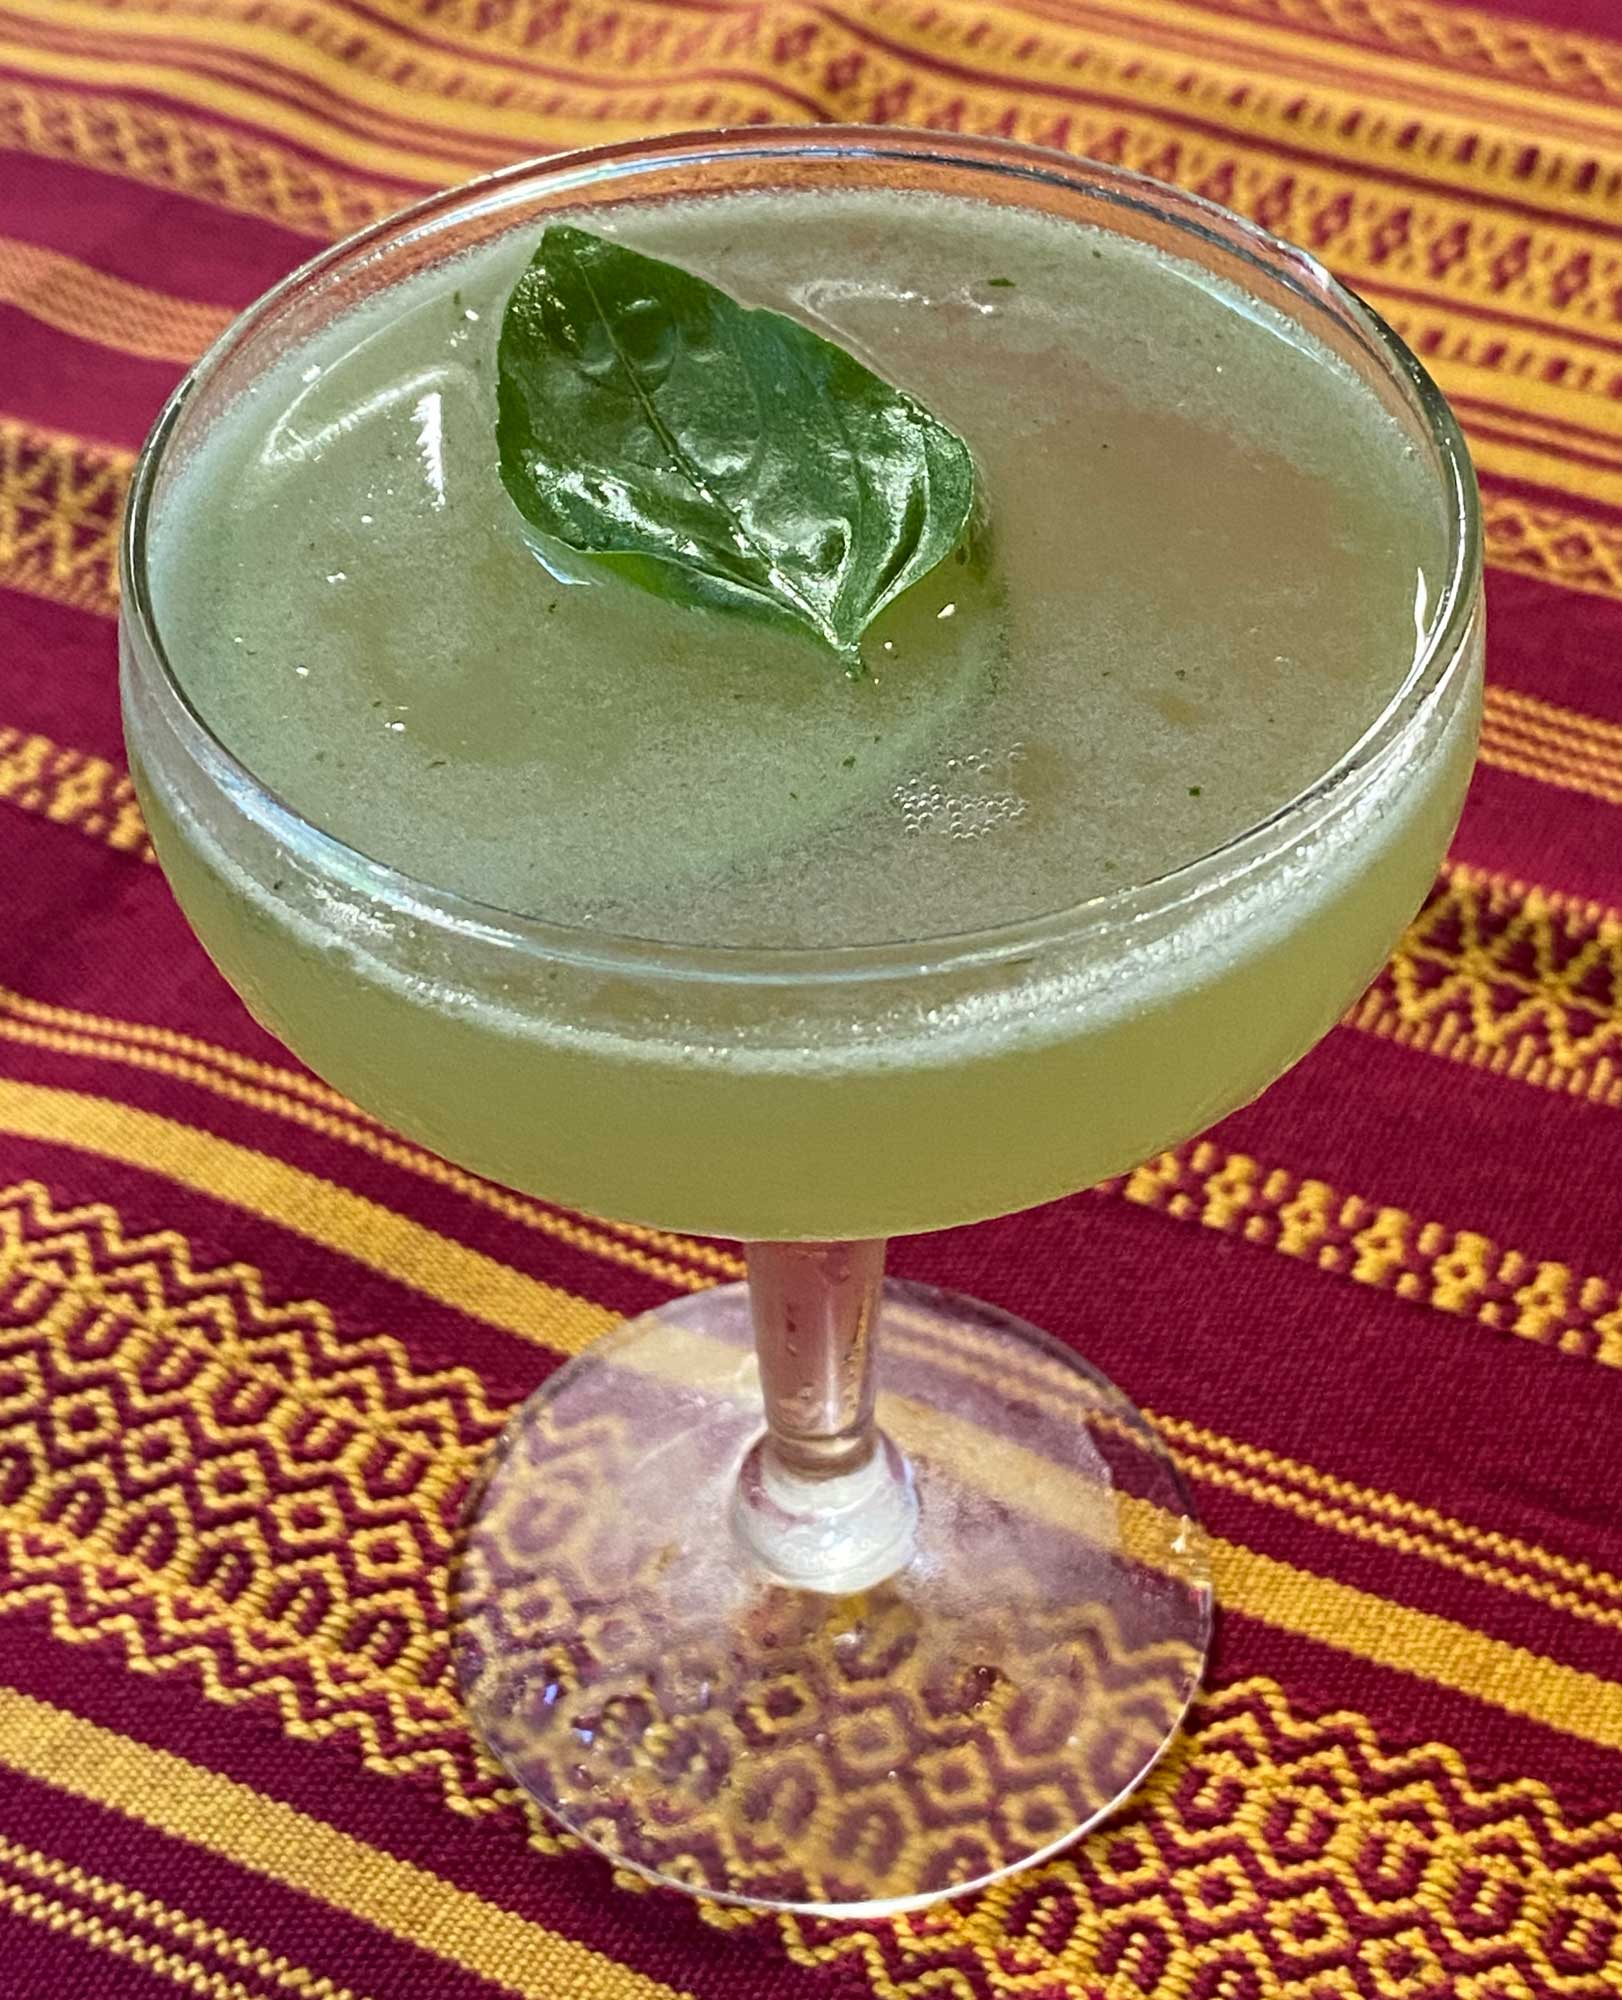 An example of the Basil South Side, the mixed drink (cocktail) featuring blanco tequila, Salers Gentian Apéritif, and lime juice; photo by Martin Doudoroff